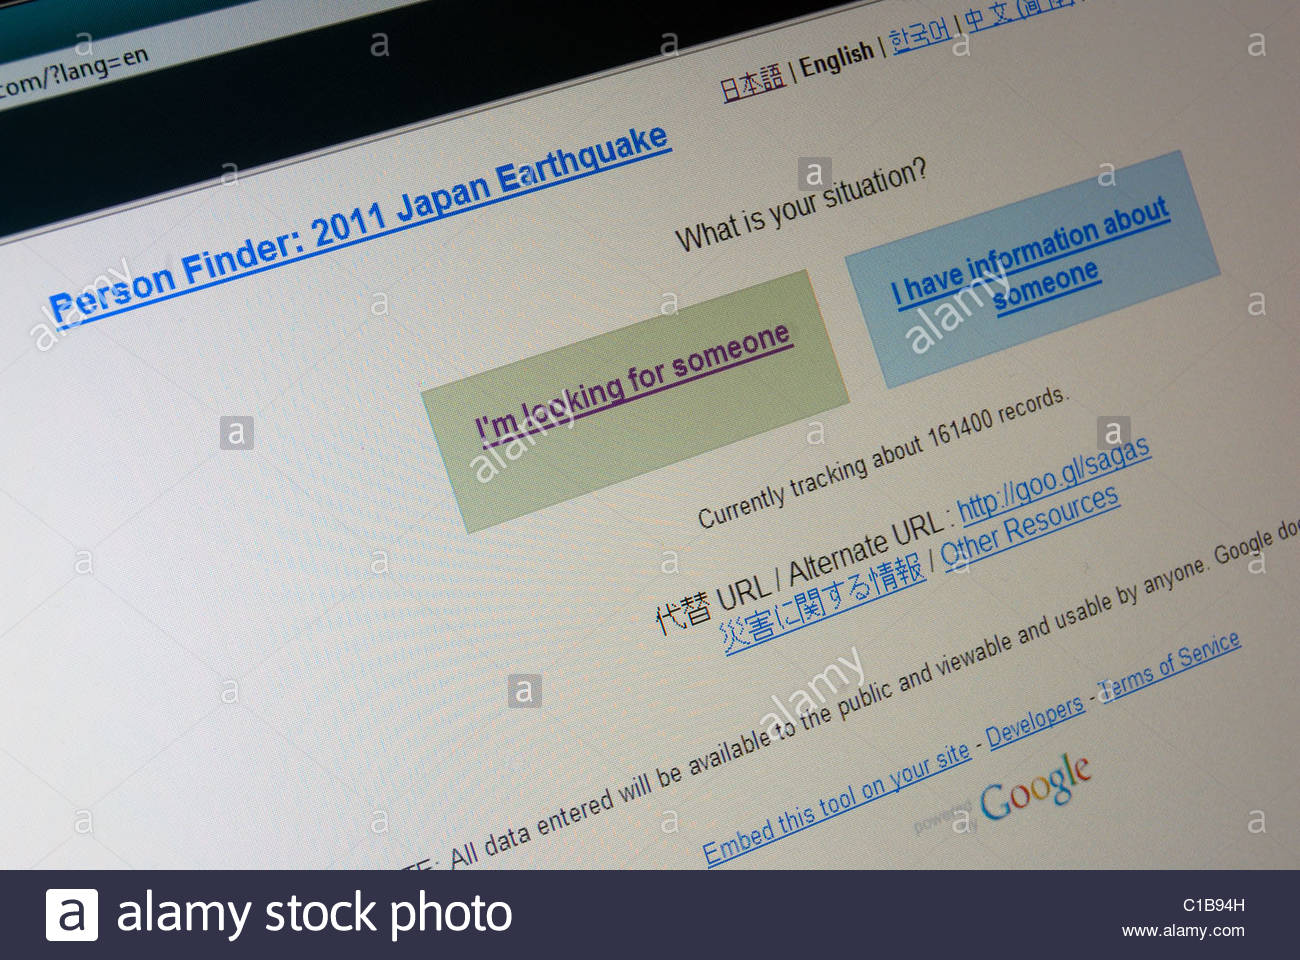 google person finder initiated